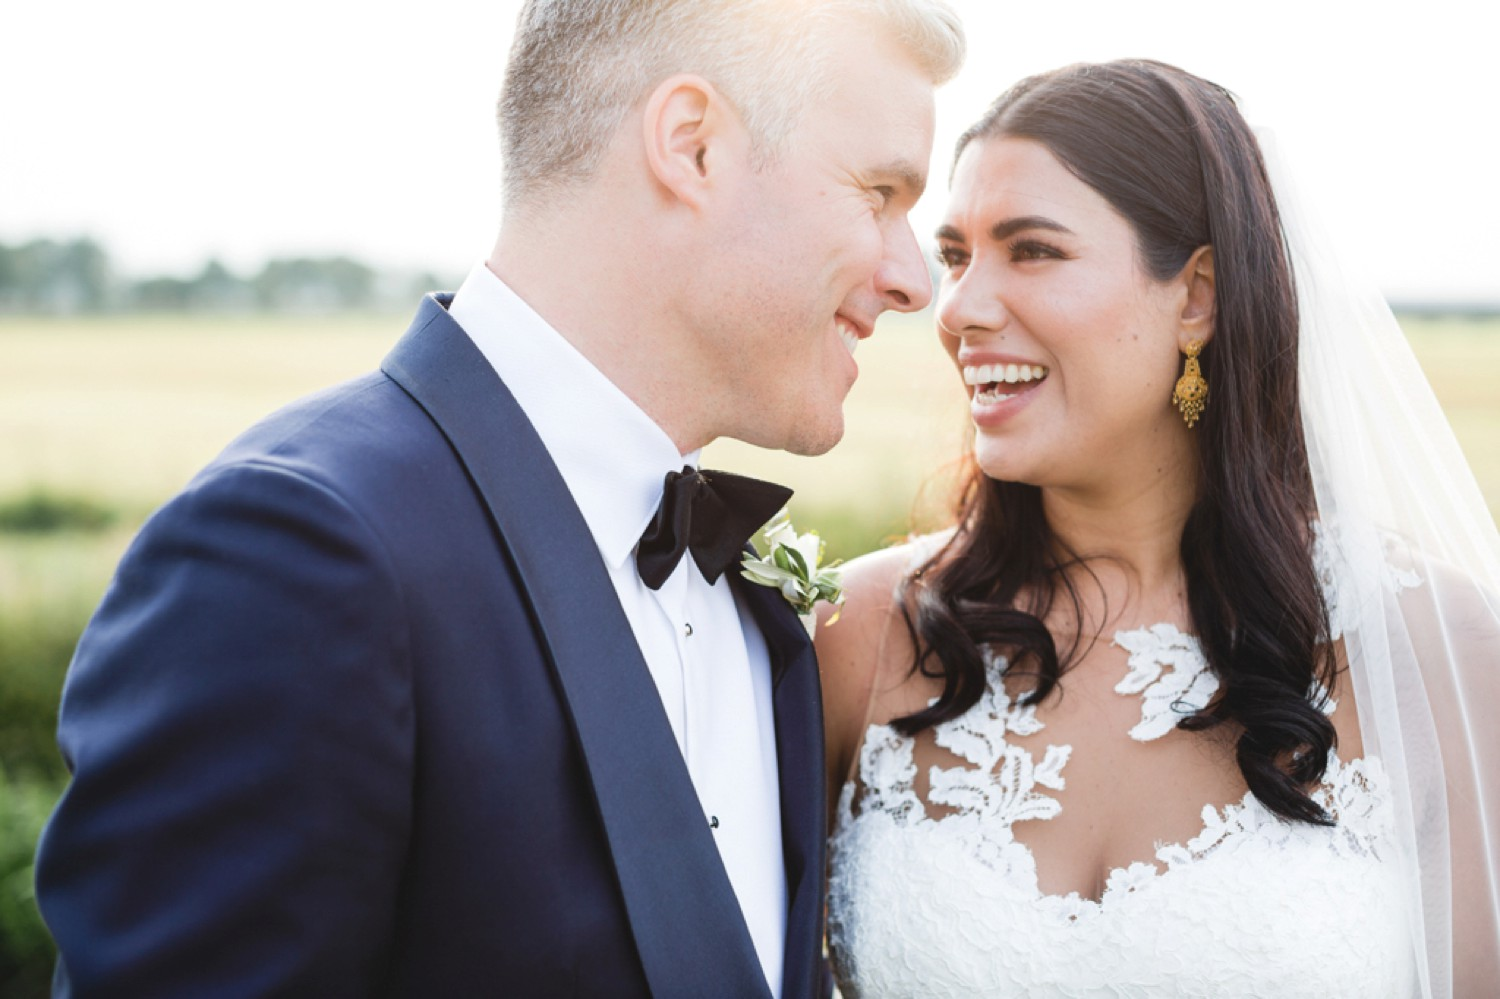 wedding-thomas-kavita-by-nienke-van-denderen-fotografie-100